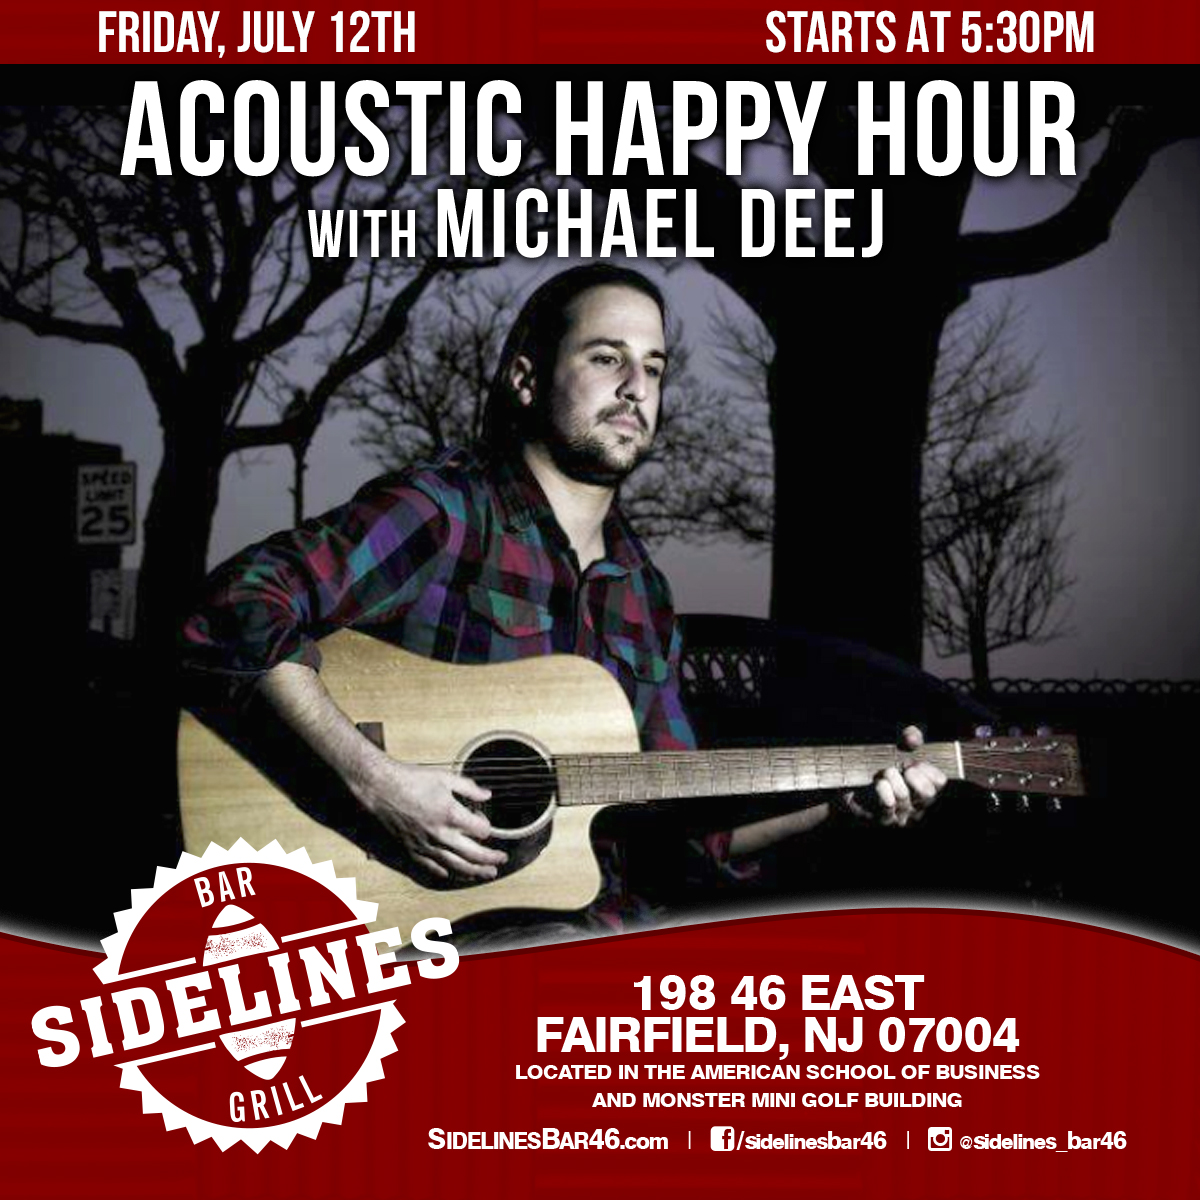 Sidelines_AcousticHappyHour_July12-2019.jpg